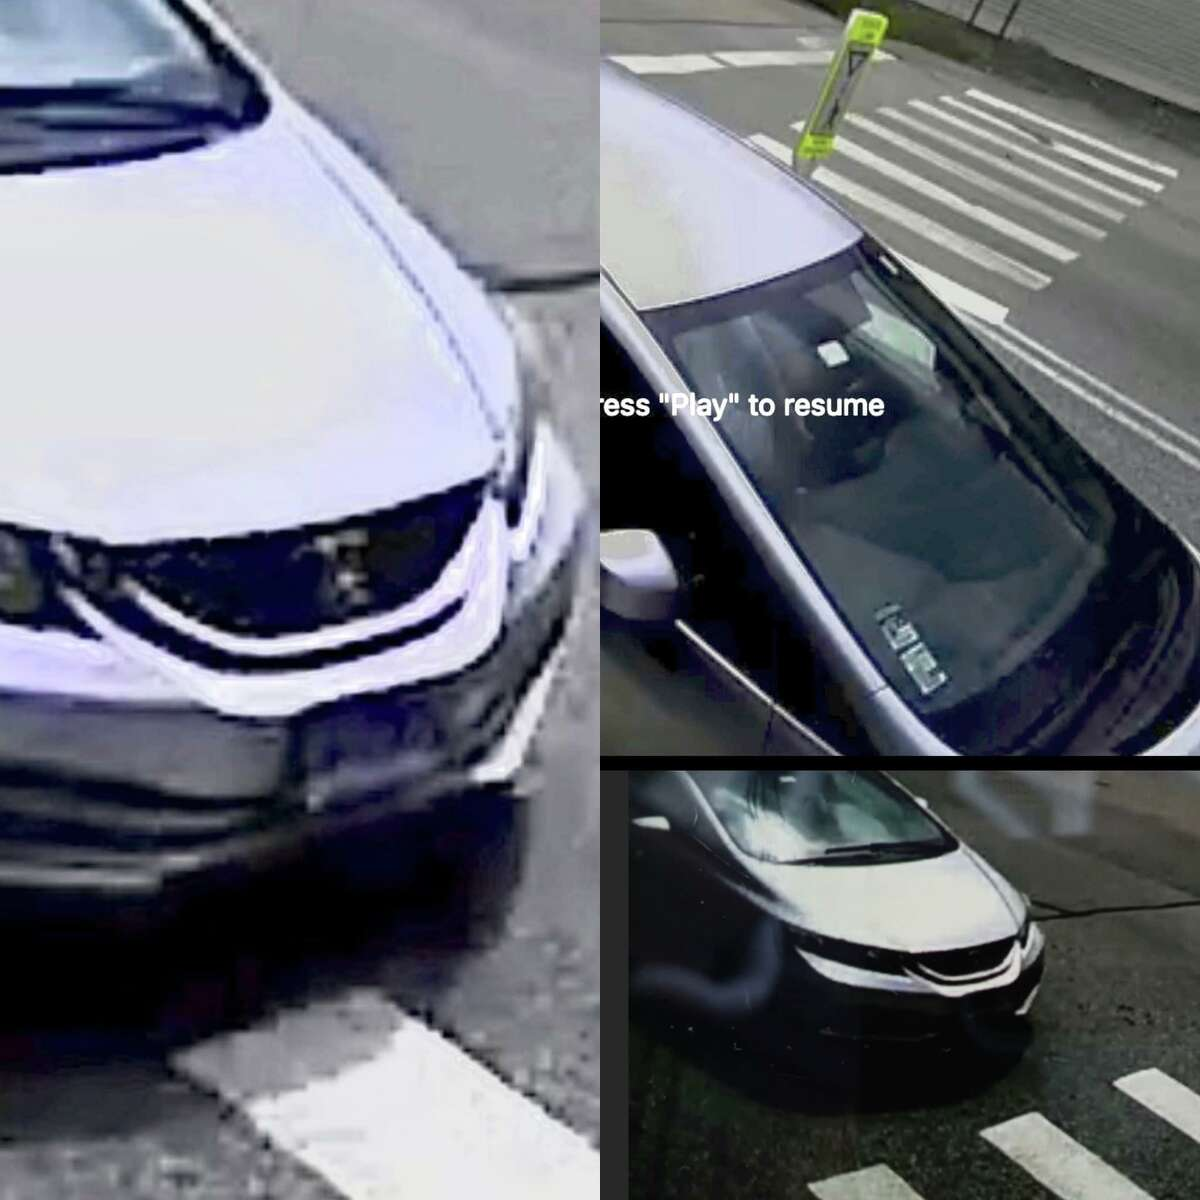 The 16-year-old bicyclist was hit from behind by a driver who fled on Wyassup Road in North Stonington, Conn., on July 14, 2021, according to police.